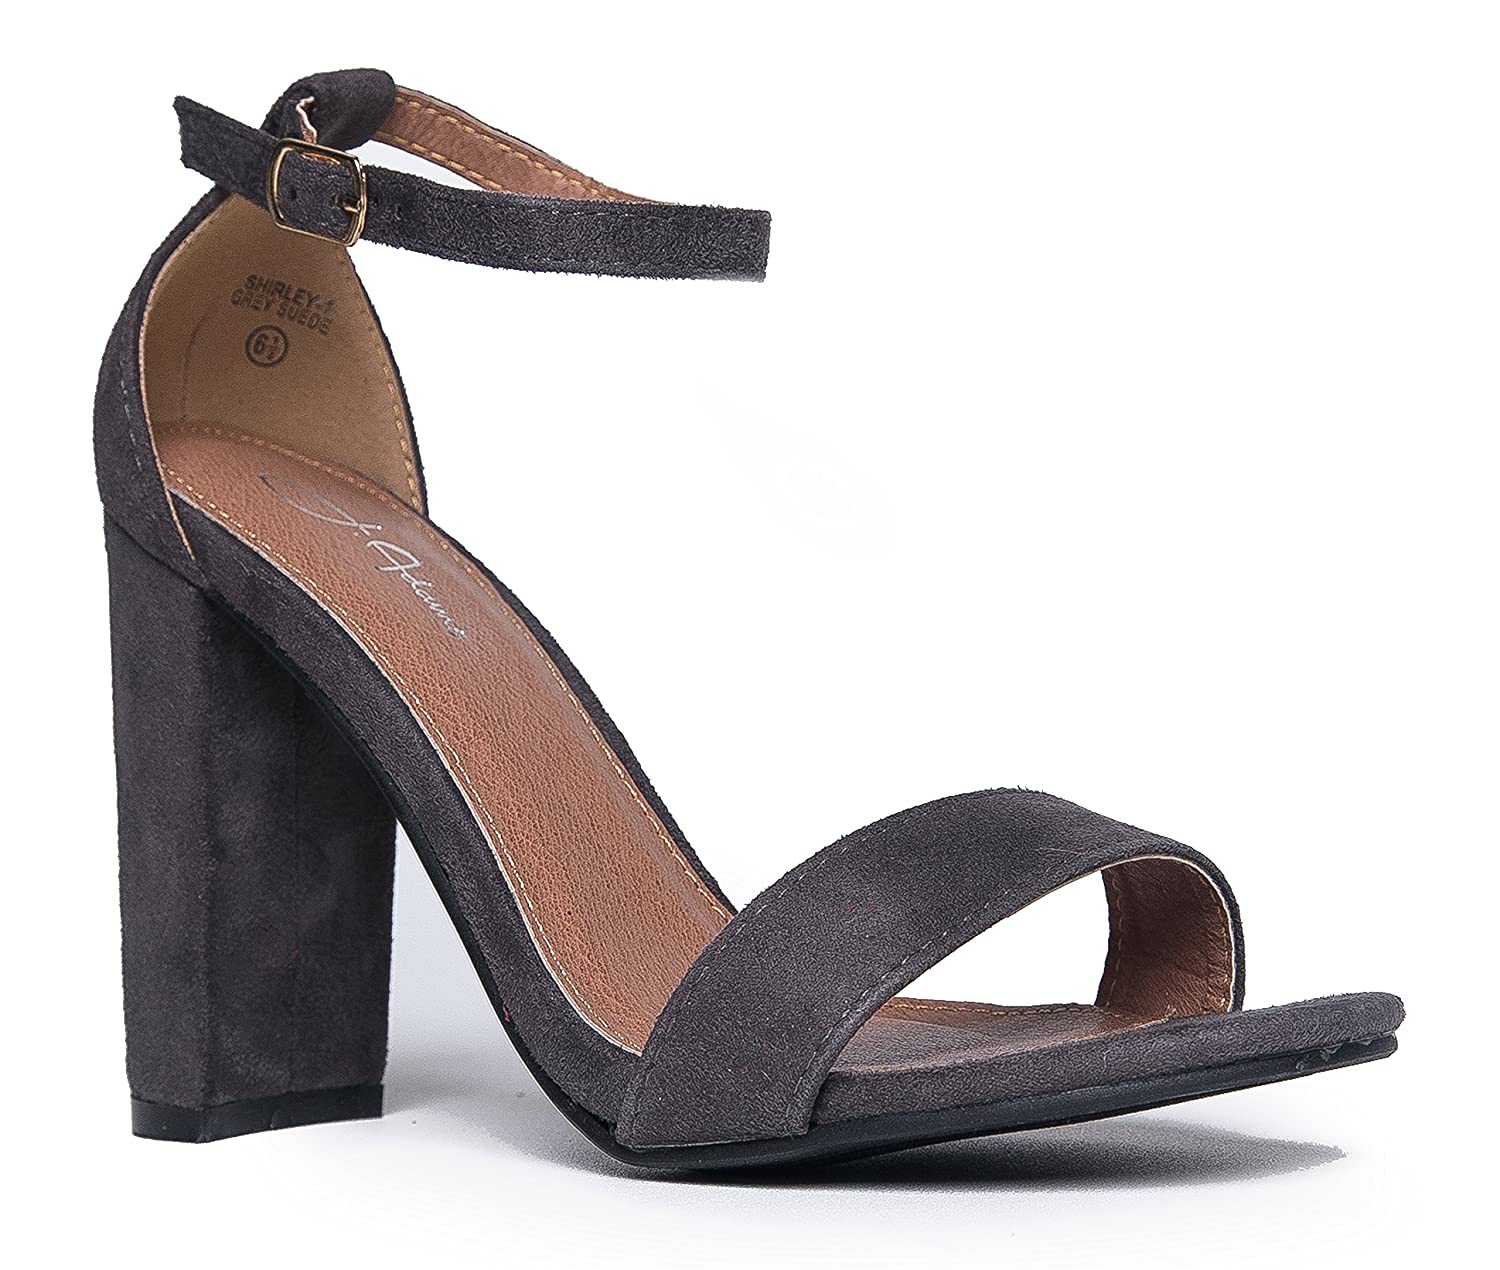 Strappy Chunky Block High Heel - Formal, Wedding, Party Simple Classic Pump - Shirley by J.Adams